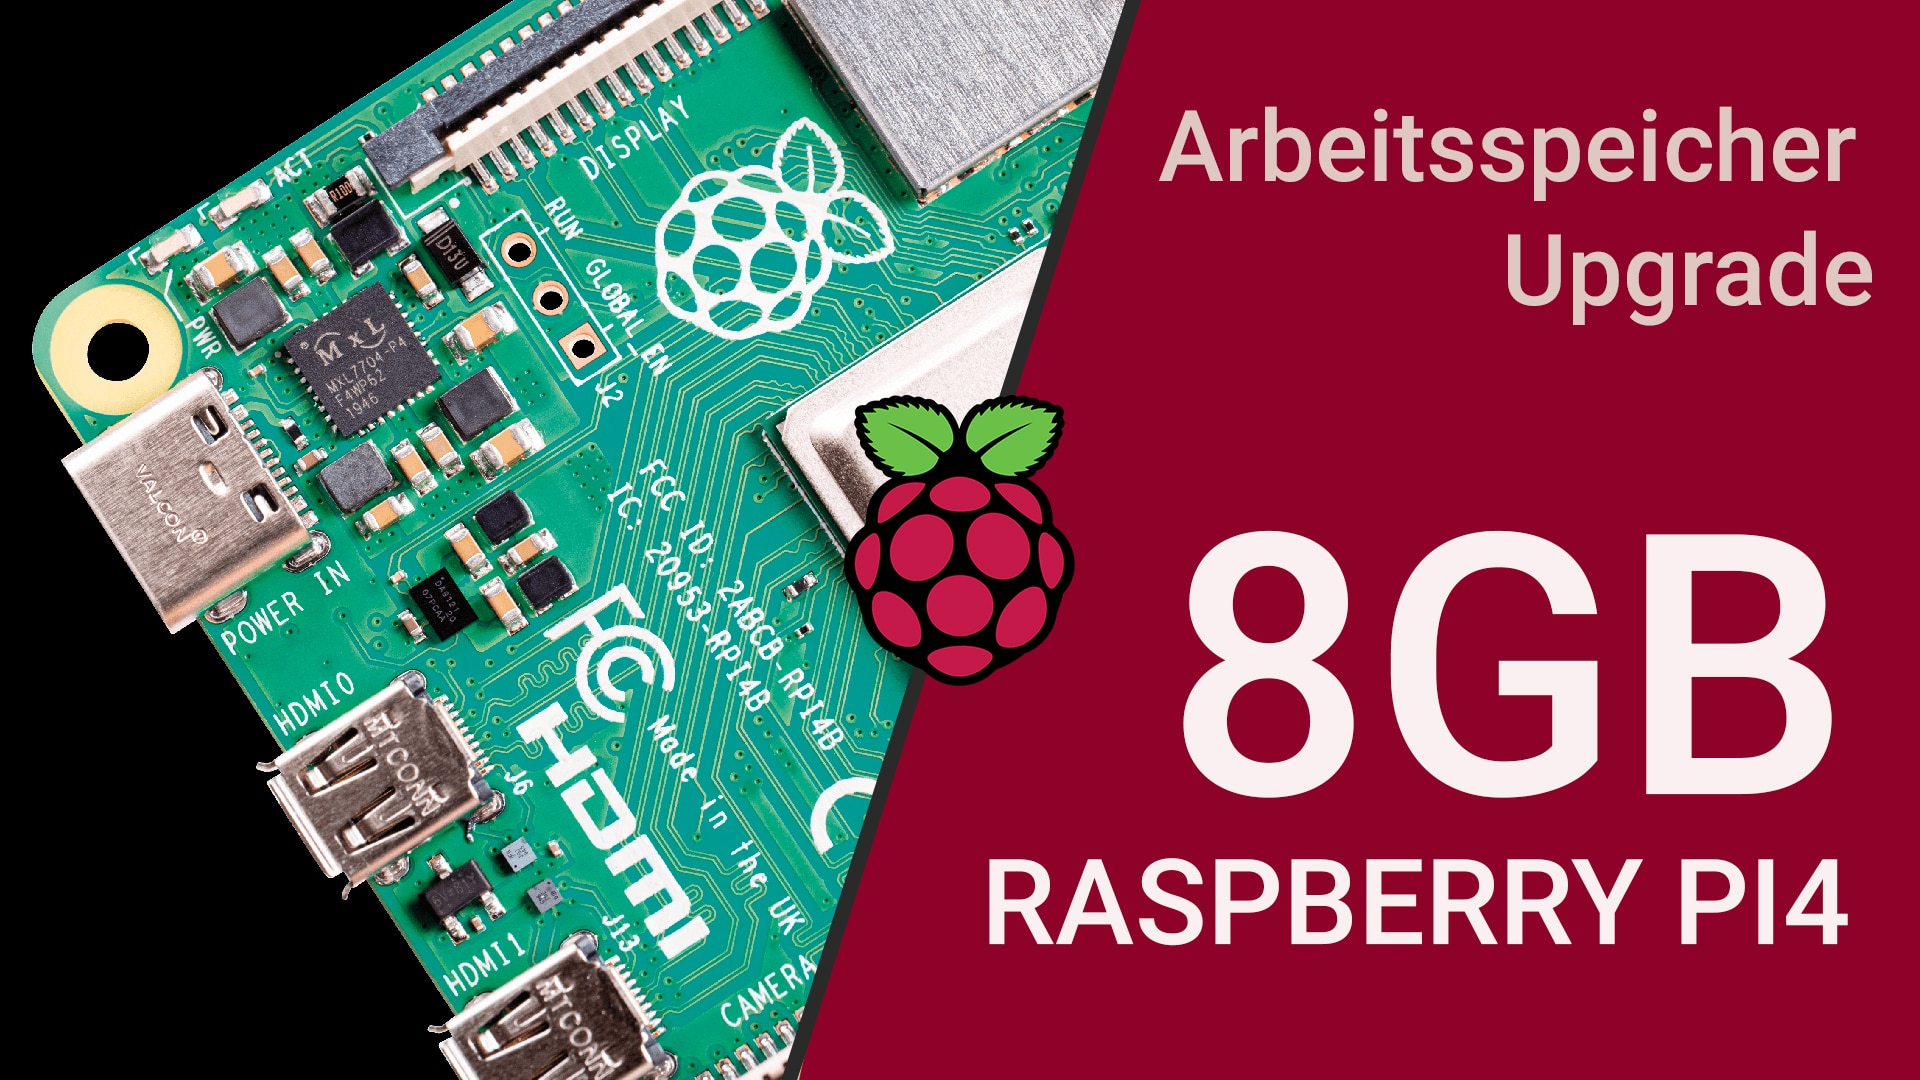 Raspberry Pi 4 8GB - digitalewelt.at